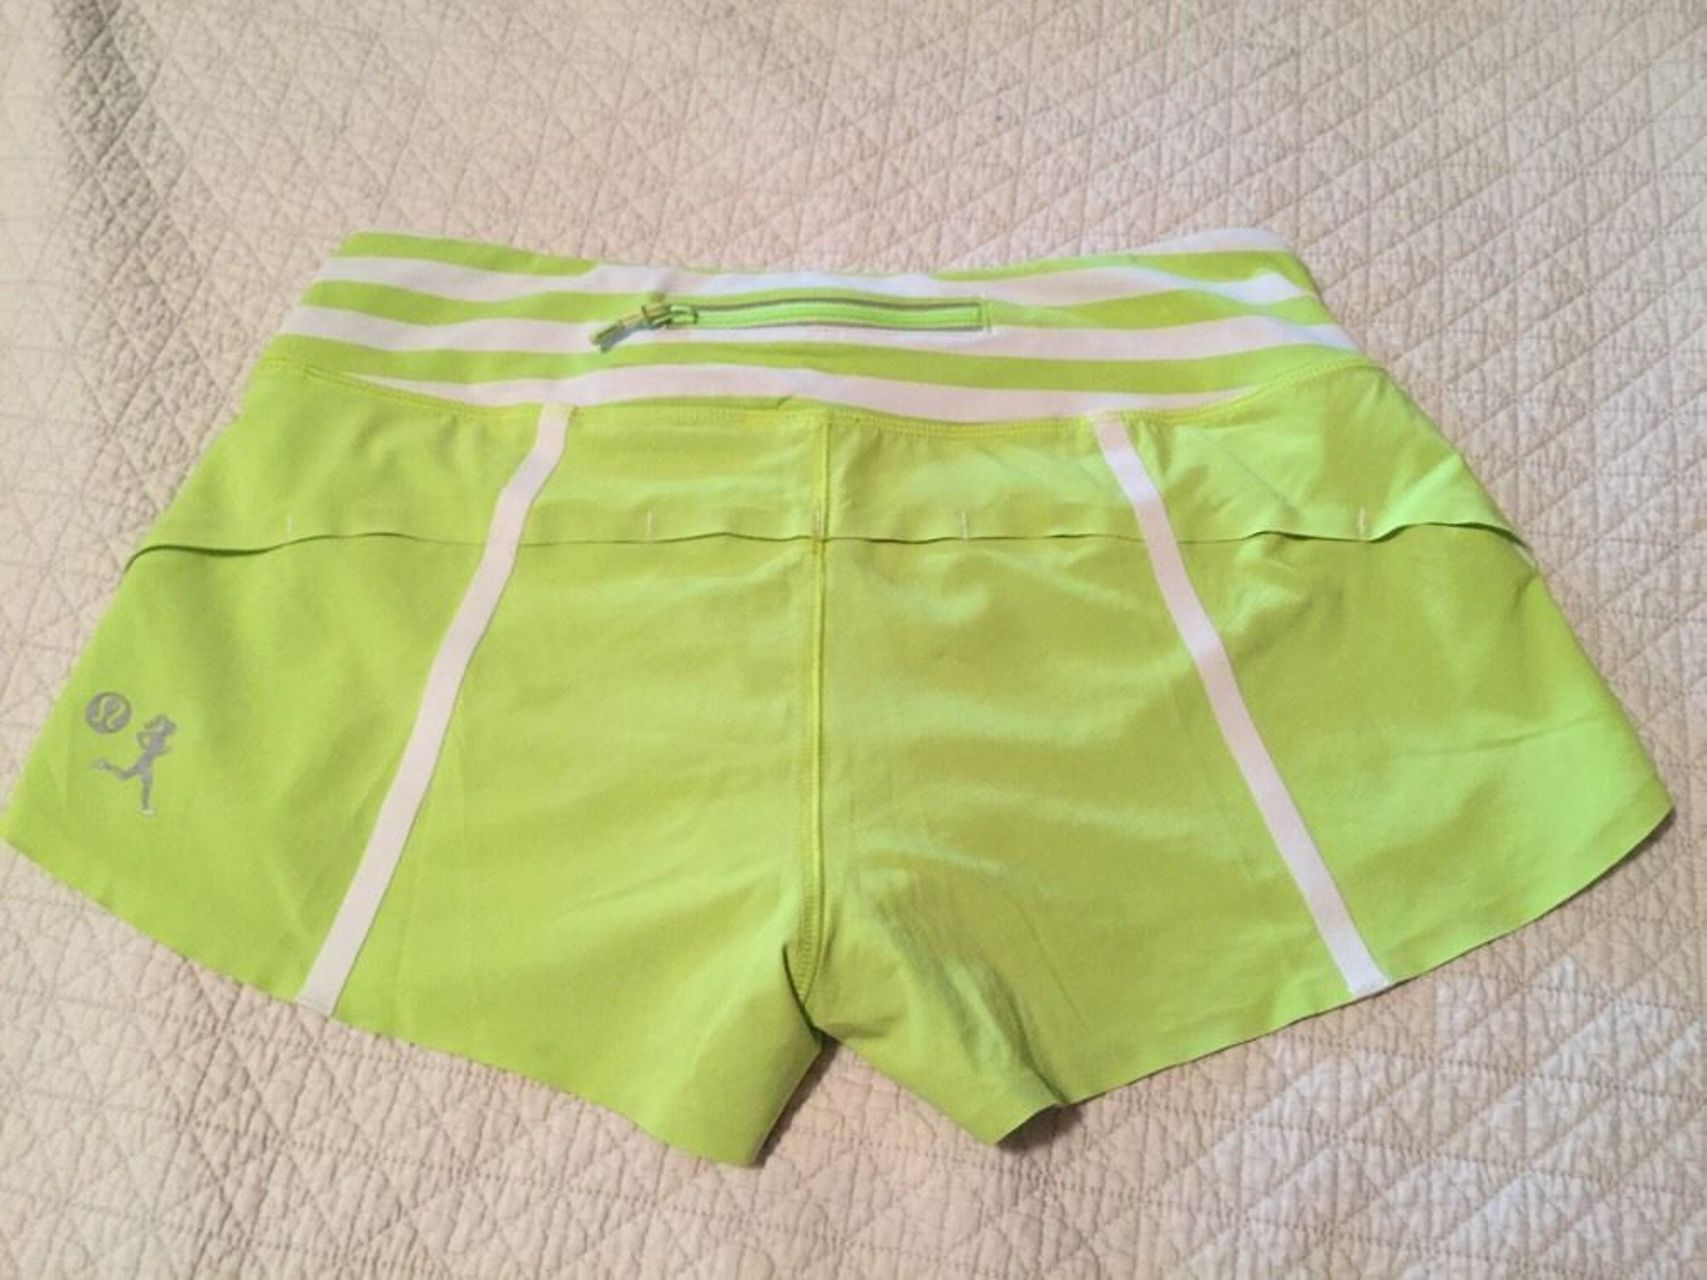 Lululemon Speed Short - 2012 Weawheeze - Lime Green